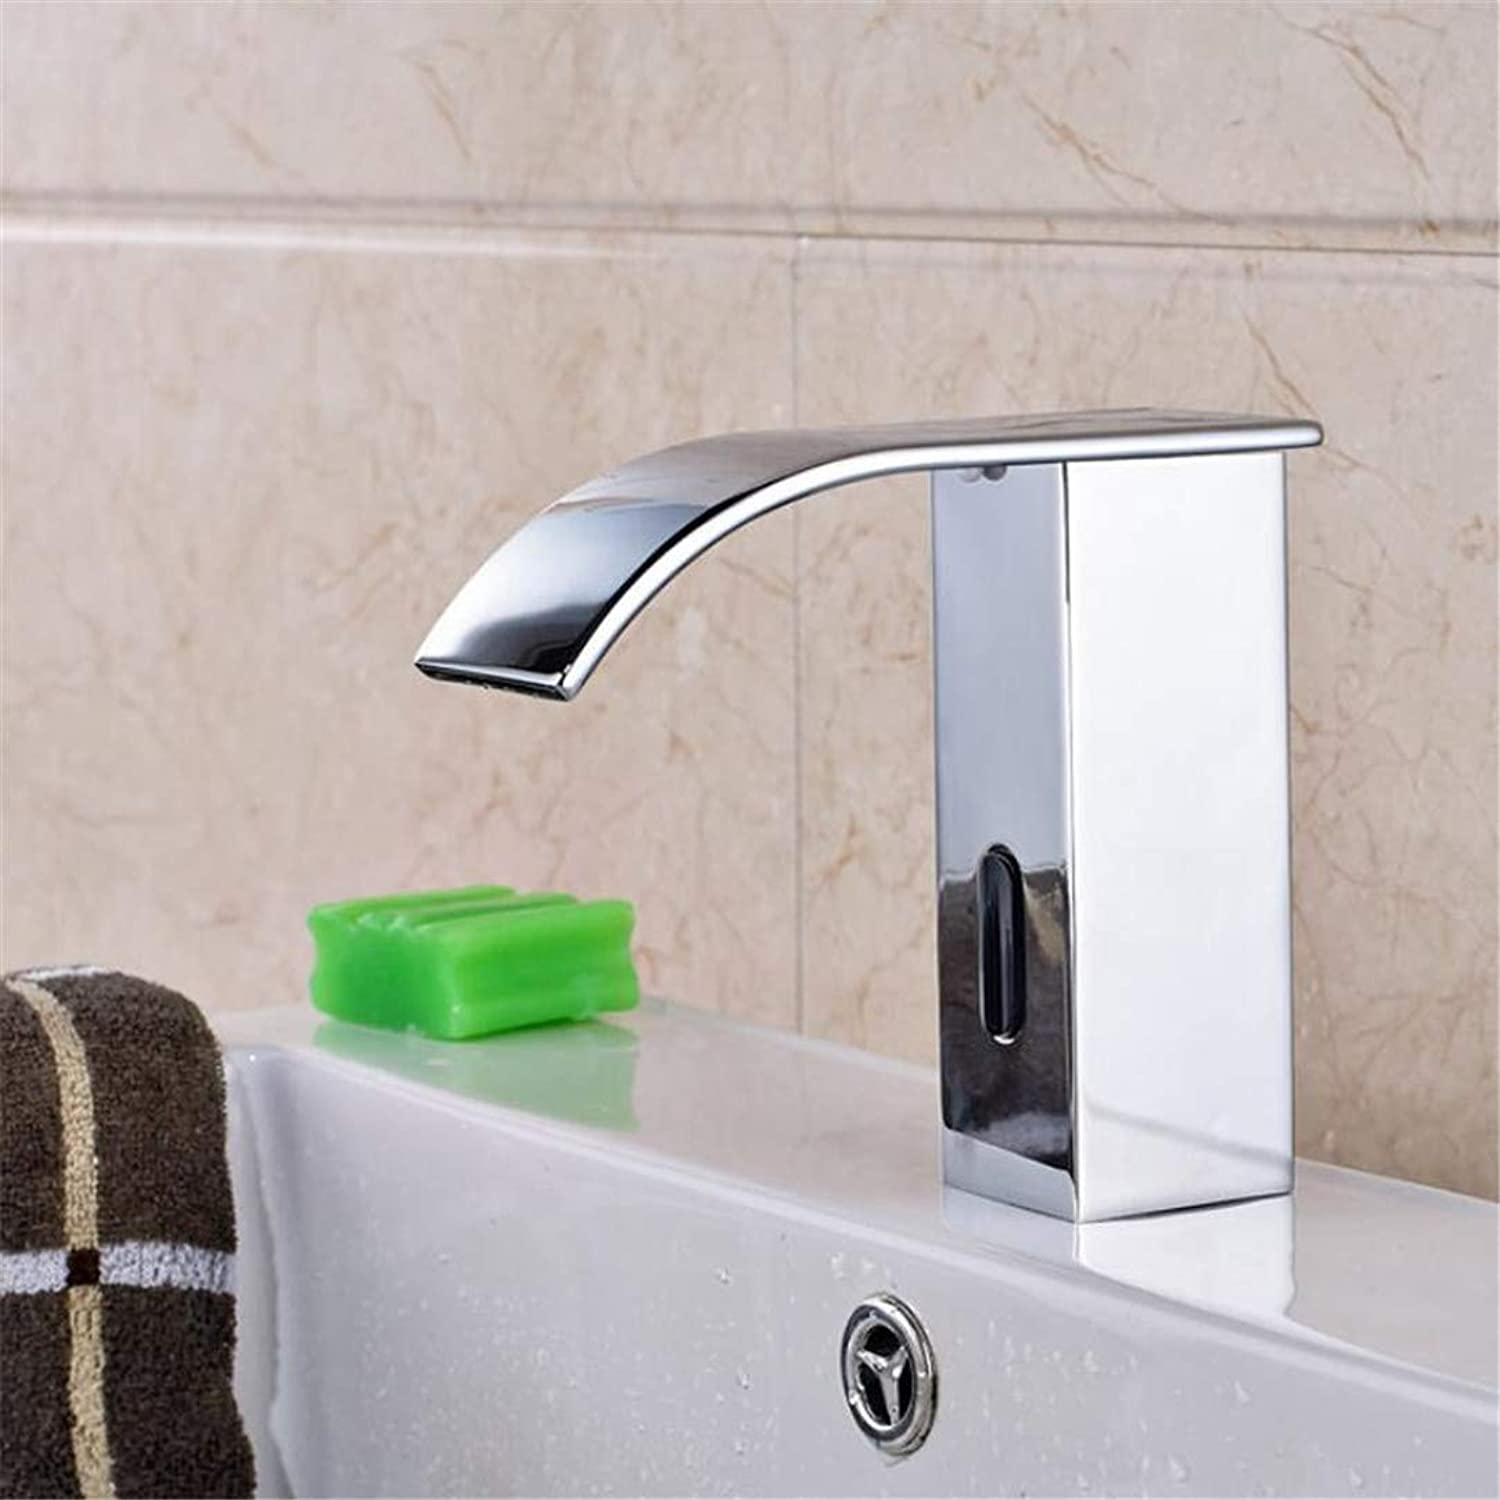 Faucet Washbasin Mixer Waterfall Wall Mount Bathroom Faucet Two Handle Basin Mixer Tap with Waterfall Flow Spout